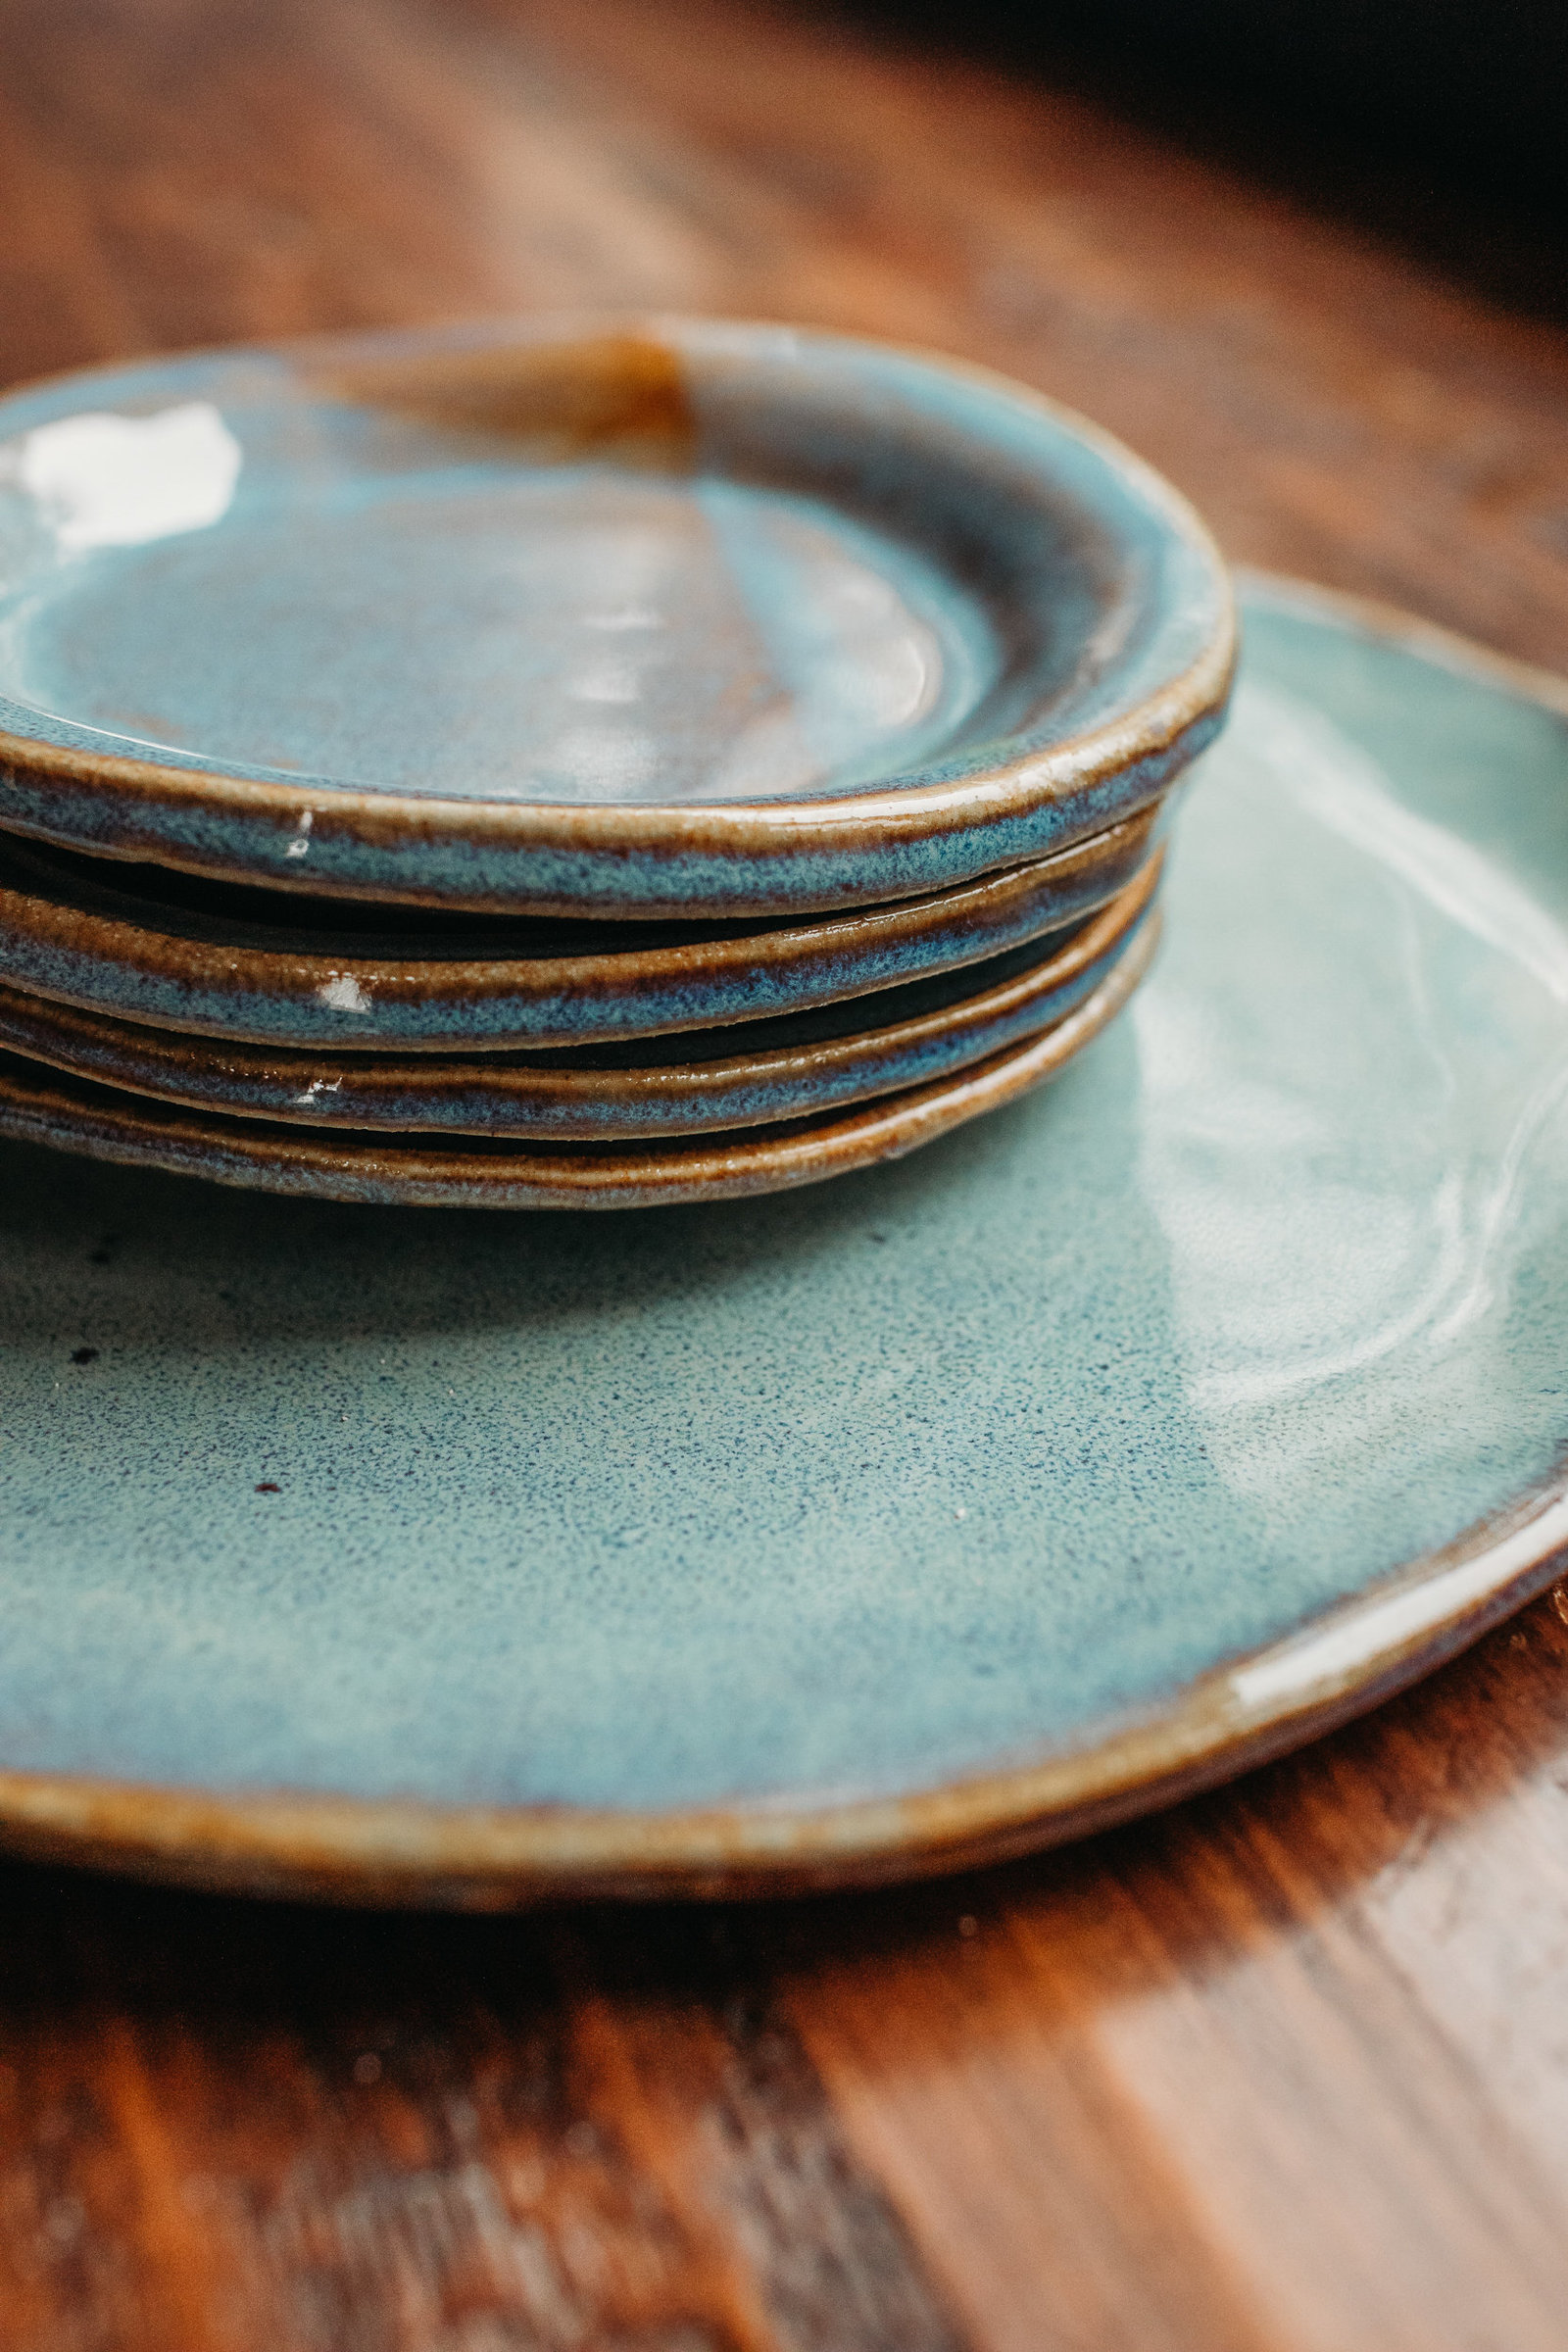 stack of blue pottery dishes with gold edges on a wooden table